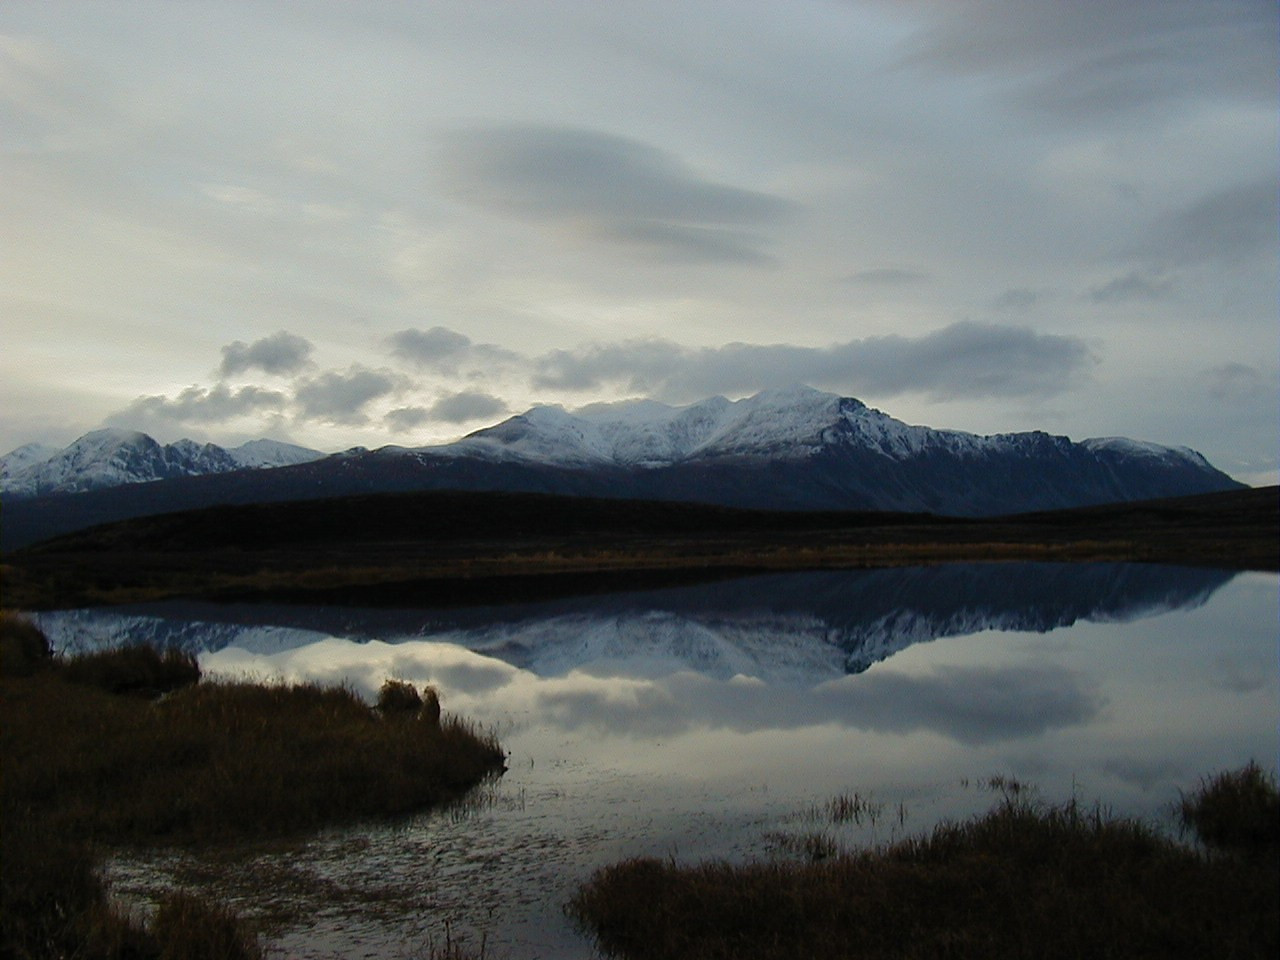 9/28/02 - Denali Hwy. near Tangle River.  Snow beginning to come down the mountains as fall heralds the coming of another winter.